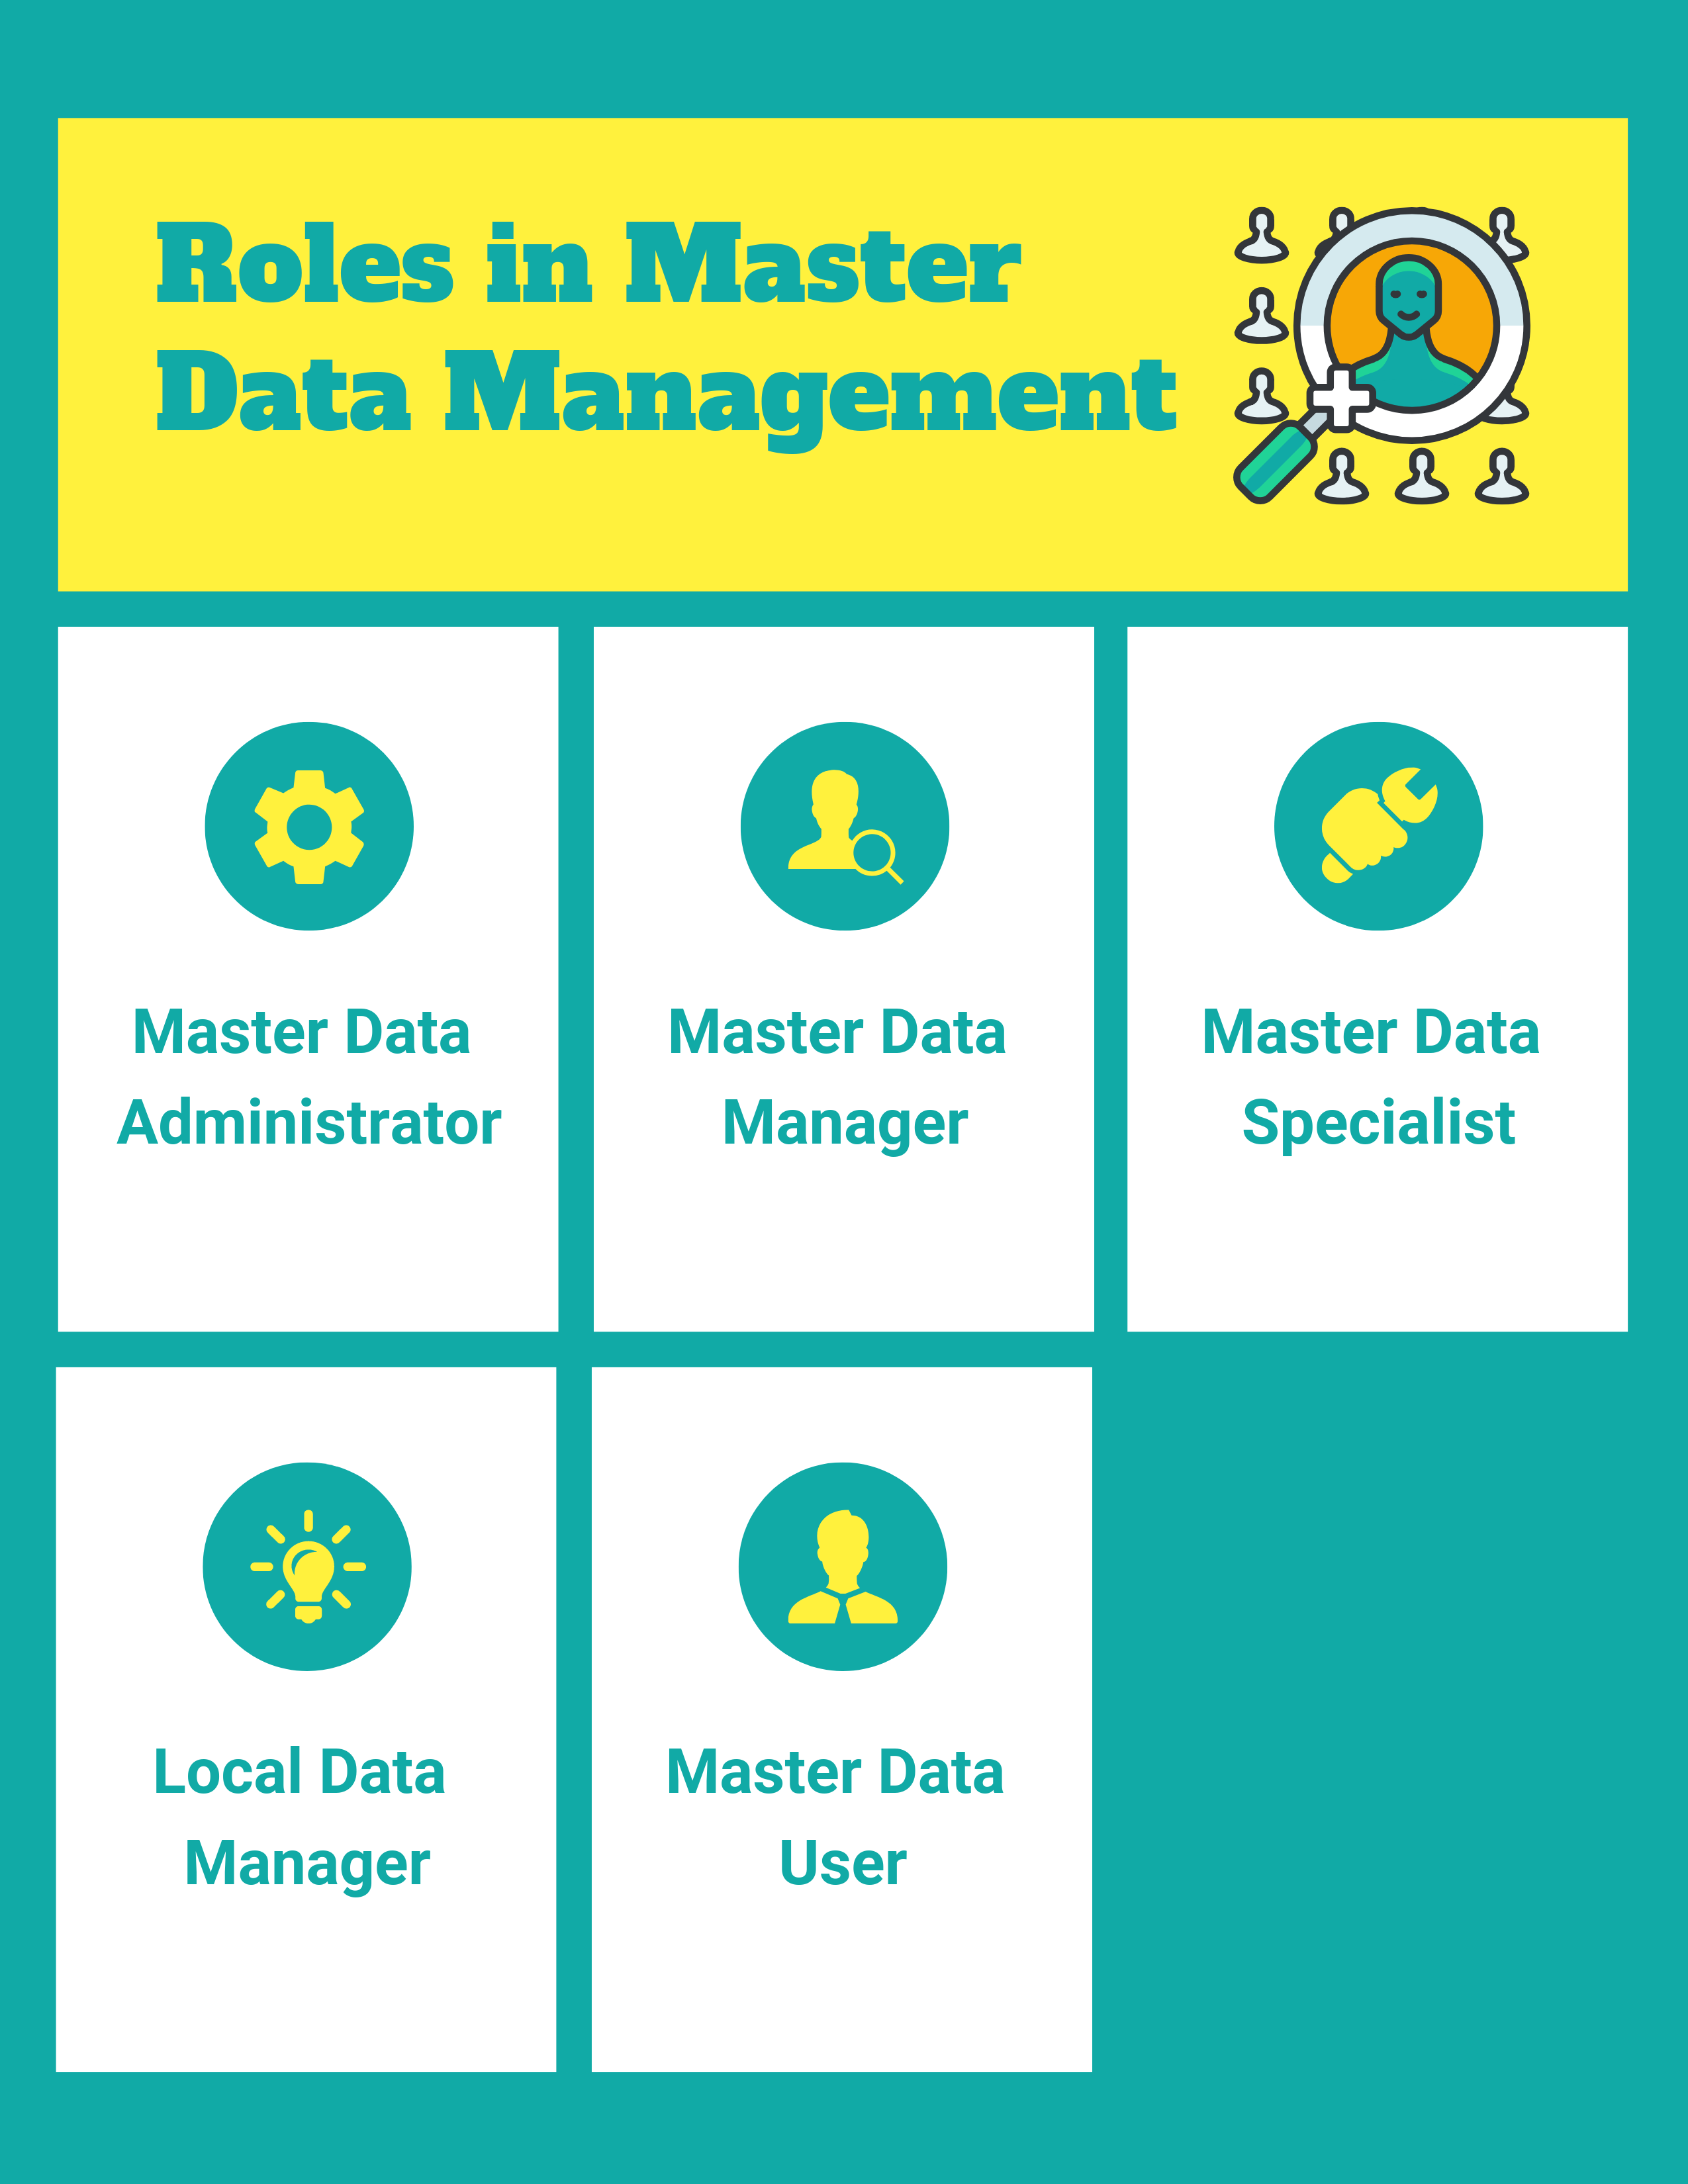 What are the Roles in Master Data Management